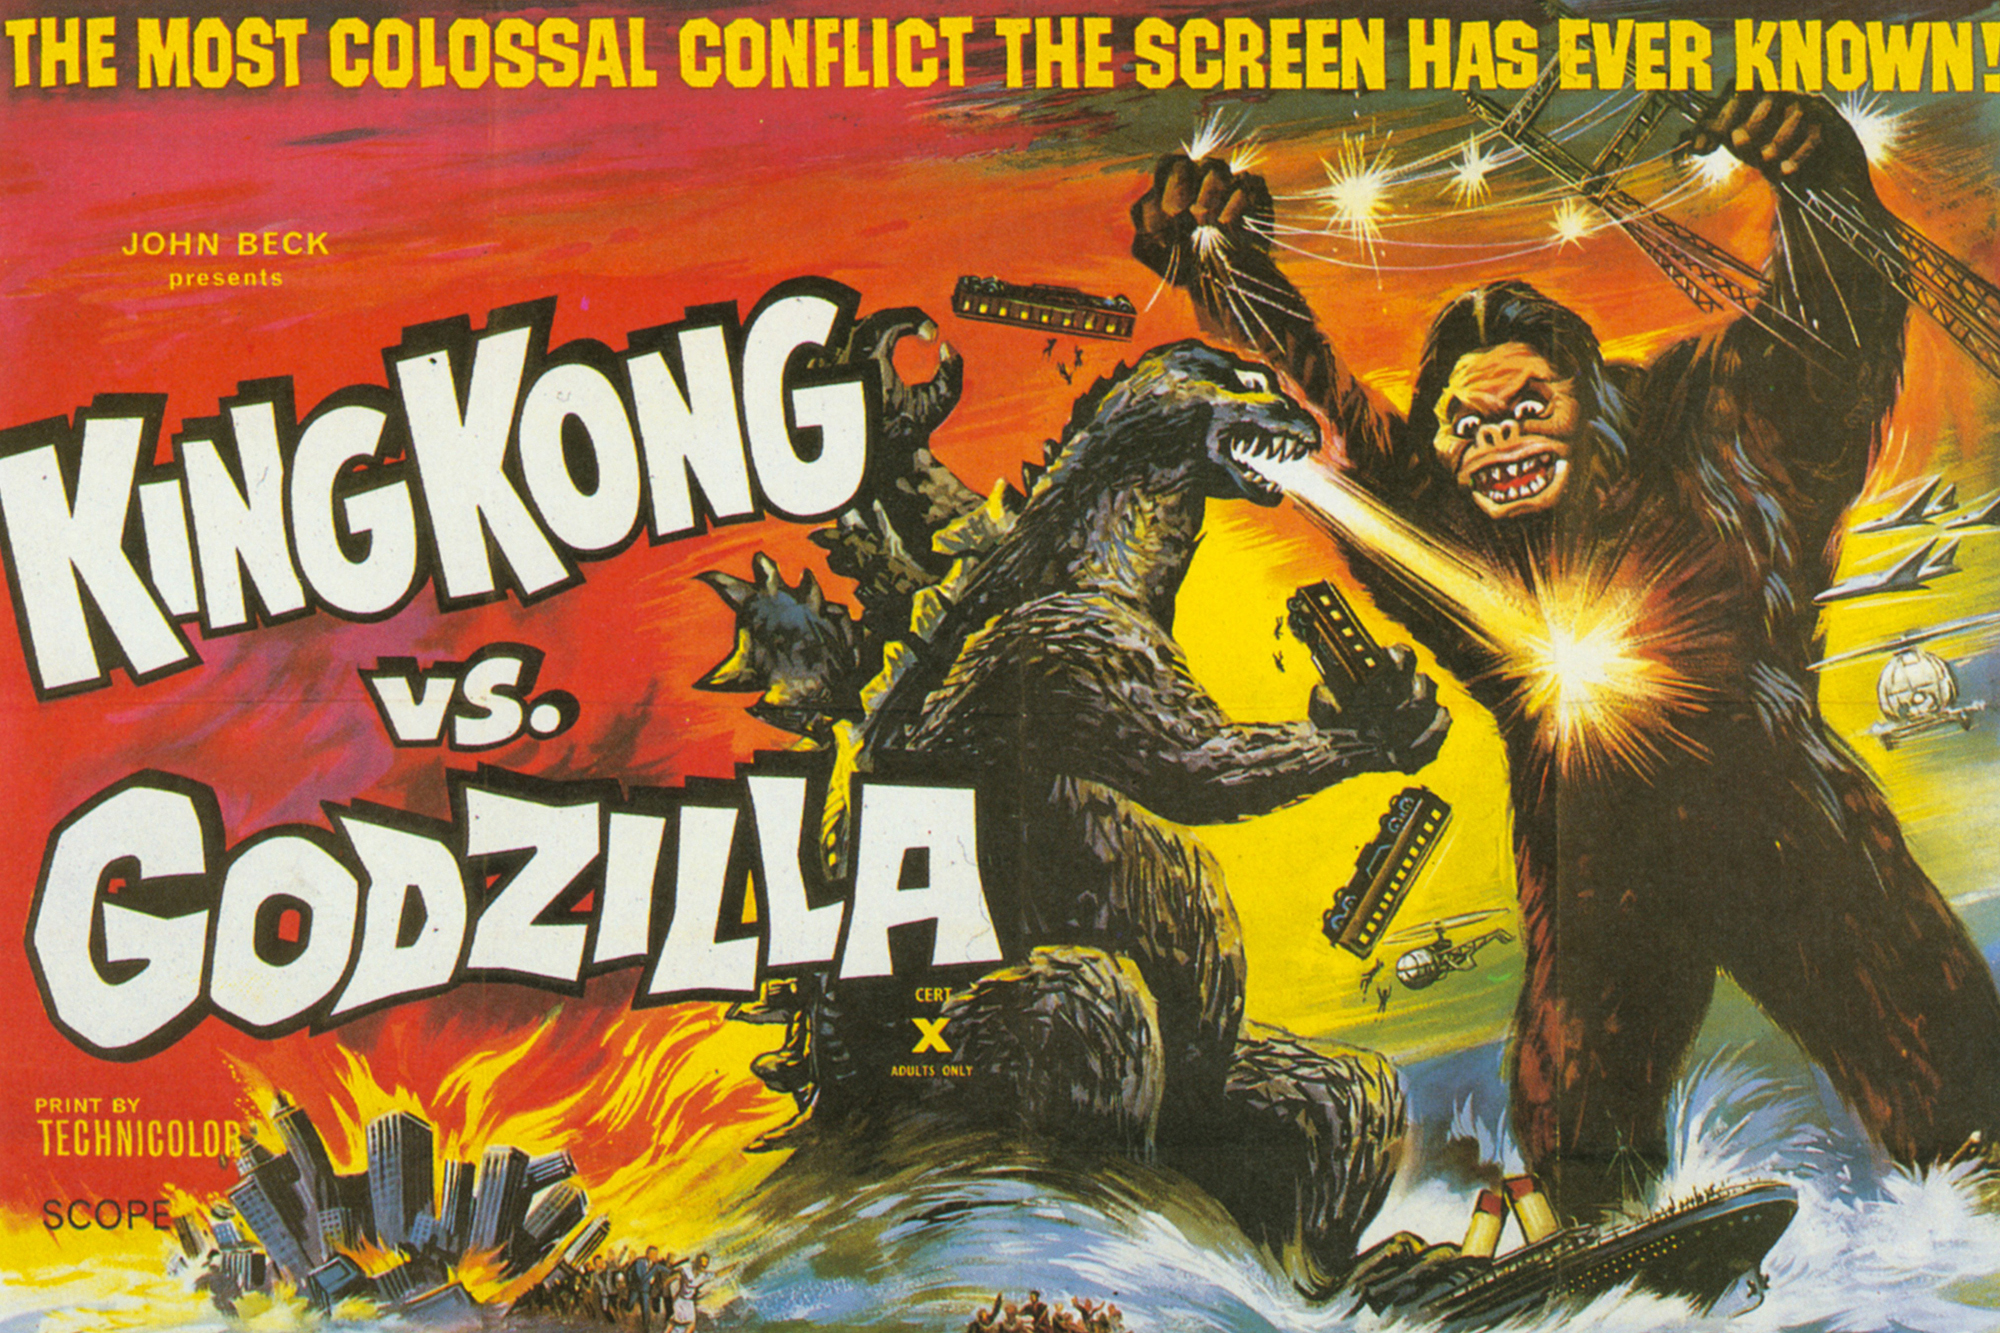 King Kong vs. Godzilla, 1962: Through a process called suitmation, developed by special-effects innovator Eiji Tsuburaya for the first Godzilla movie, Kong was revived by a man in a rubber gorilla suit moving through small-scale models that made him appear larger. The actors who played both monsters drew inspiration from professional wrestlers.